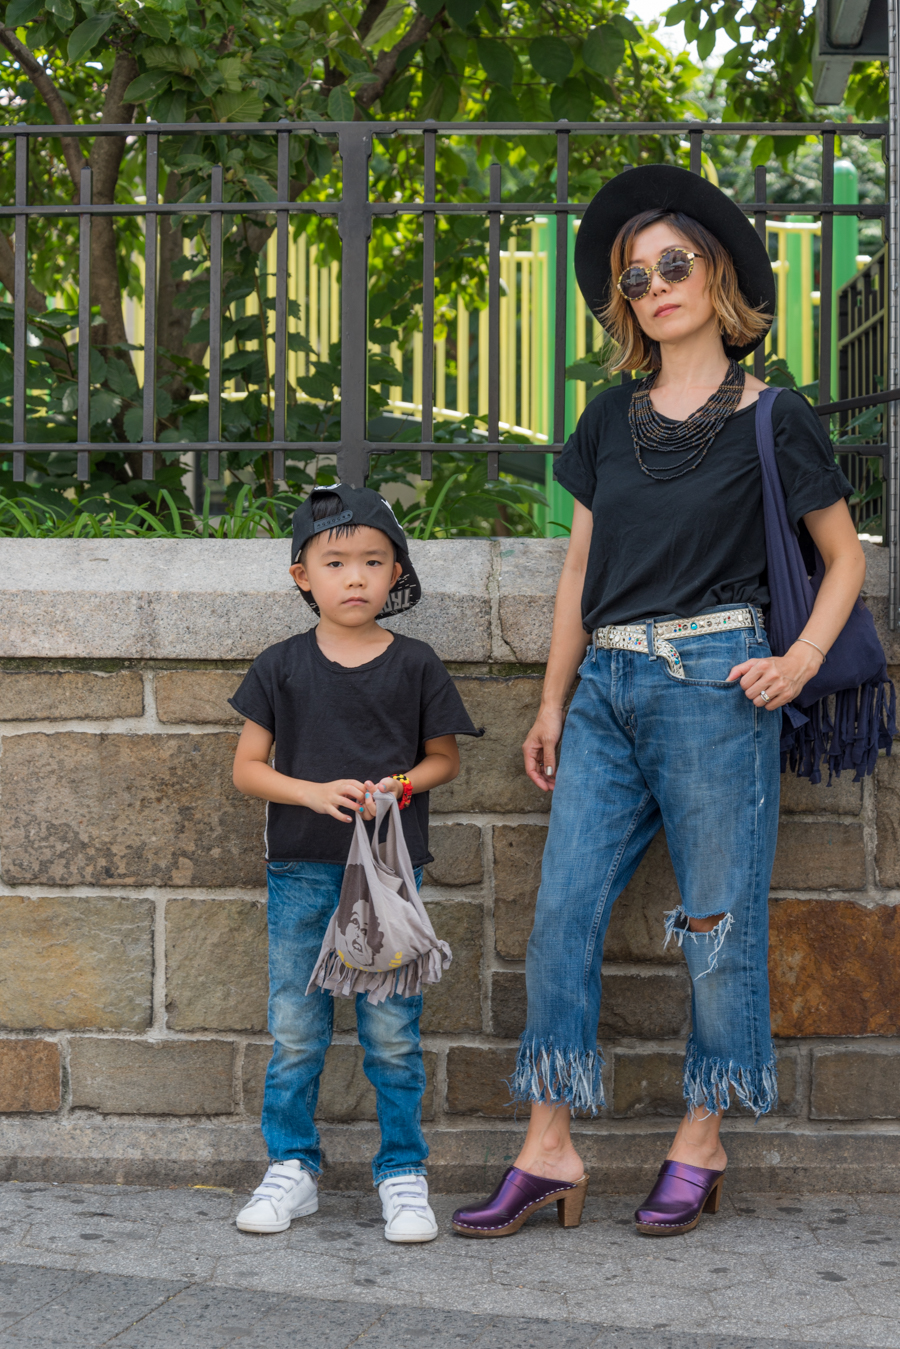 ROCK MAMA NYC LIFESTYLEBLOG -I LOVE REMAKING CLOTHES